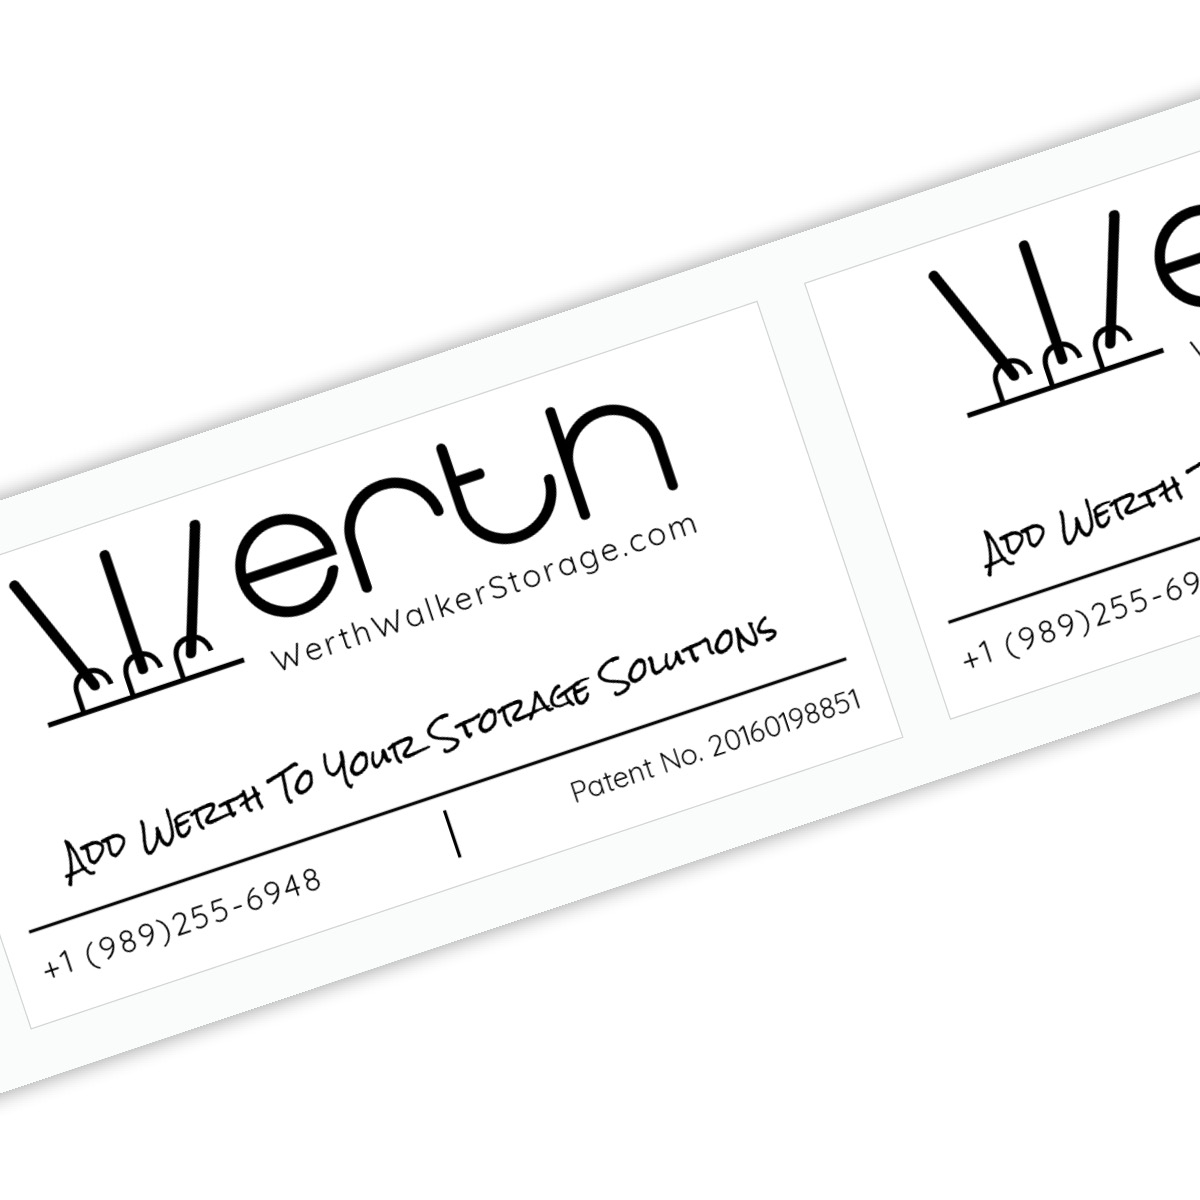 Label Werth.jpg